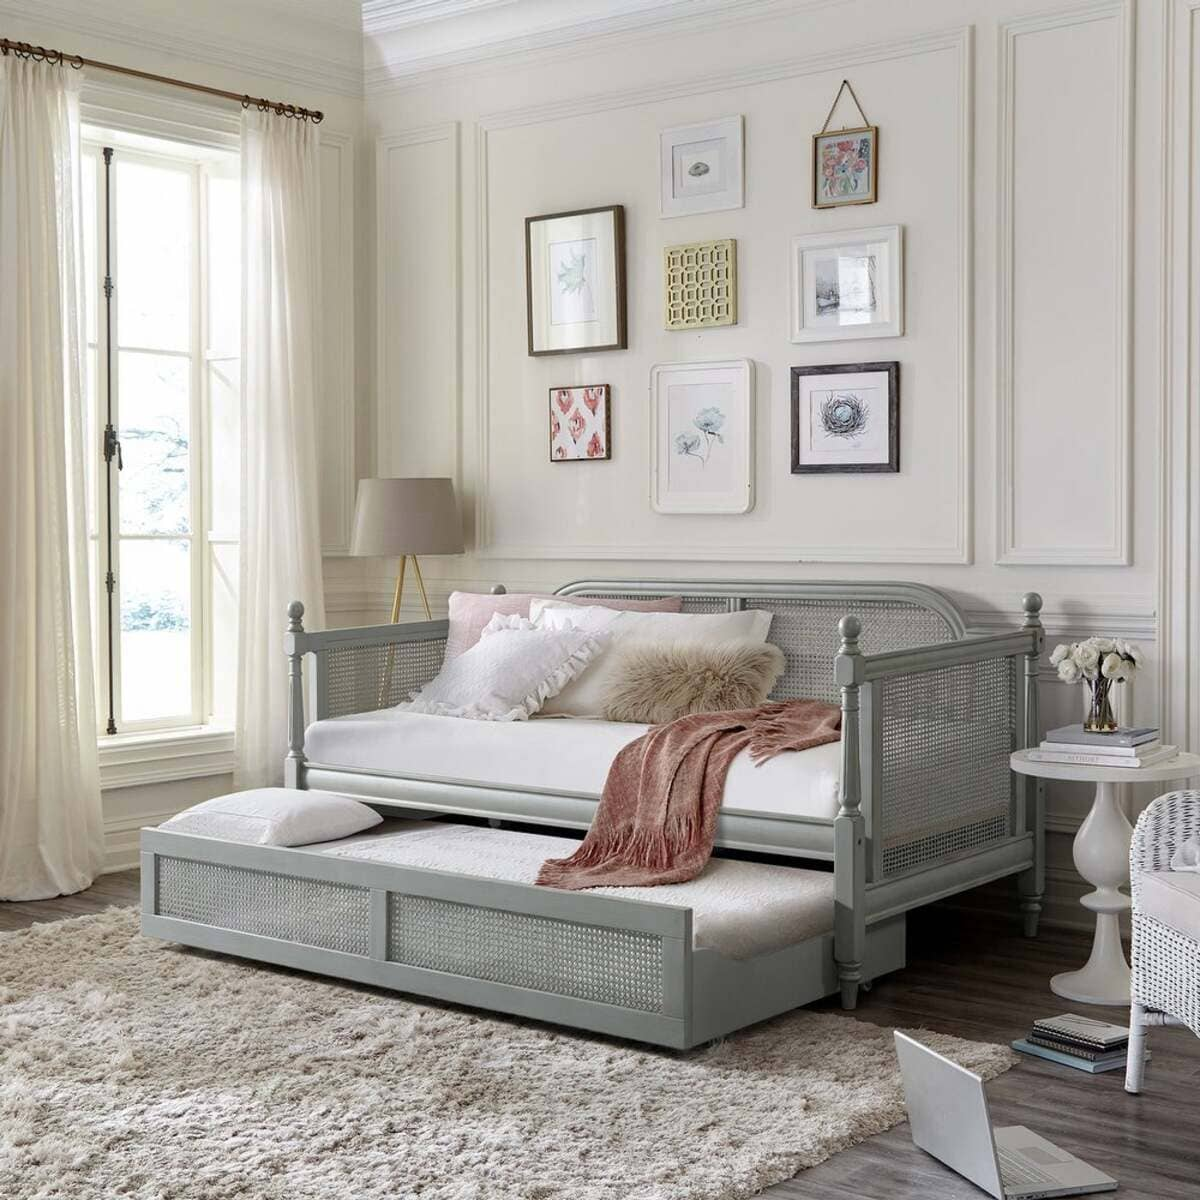 daybed 16 - 20 delightful daybeds that easily convert into comfortable beds